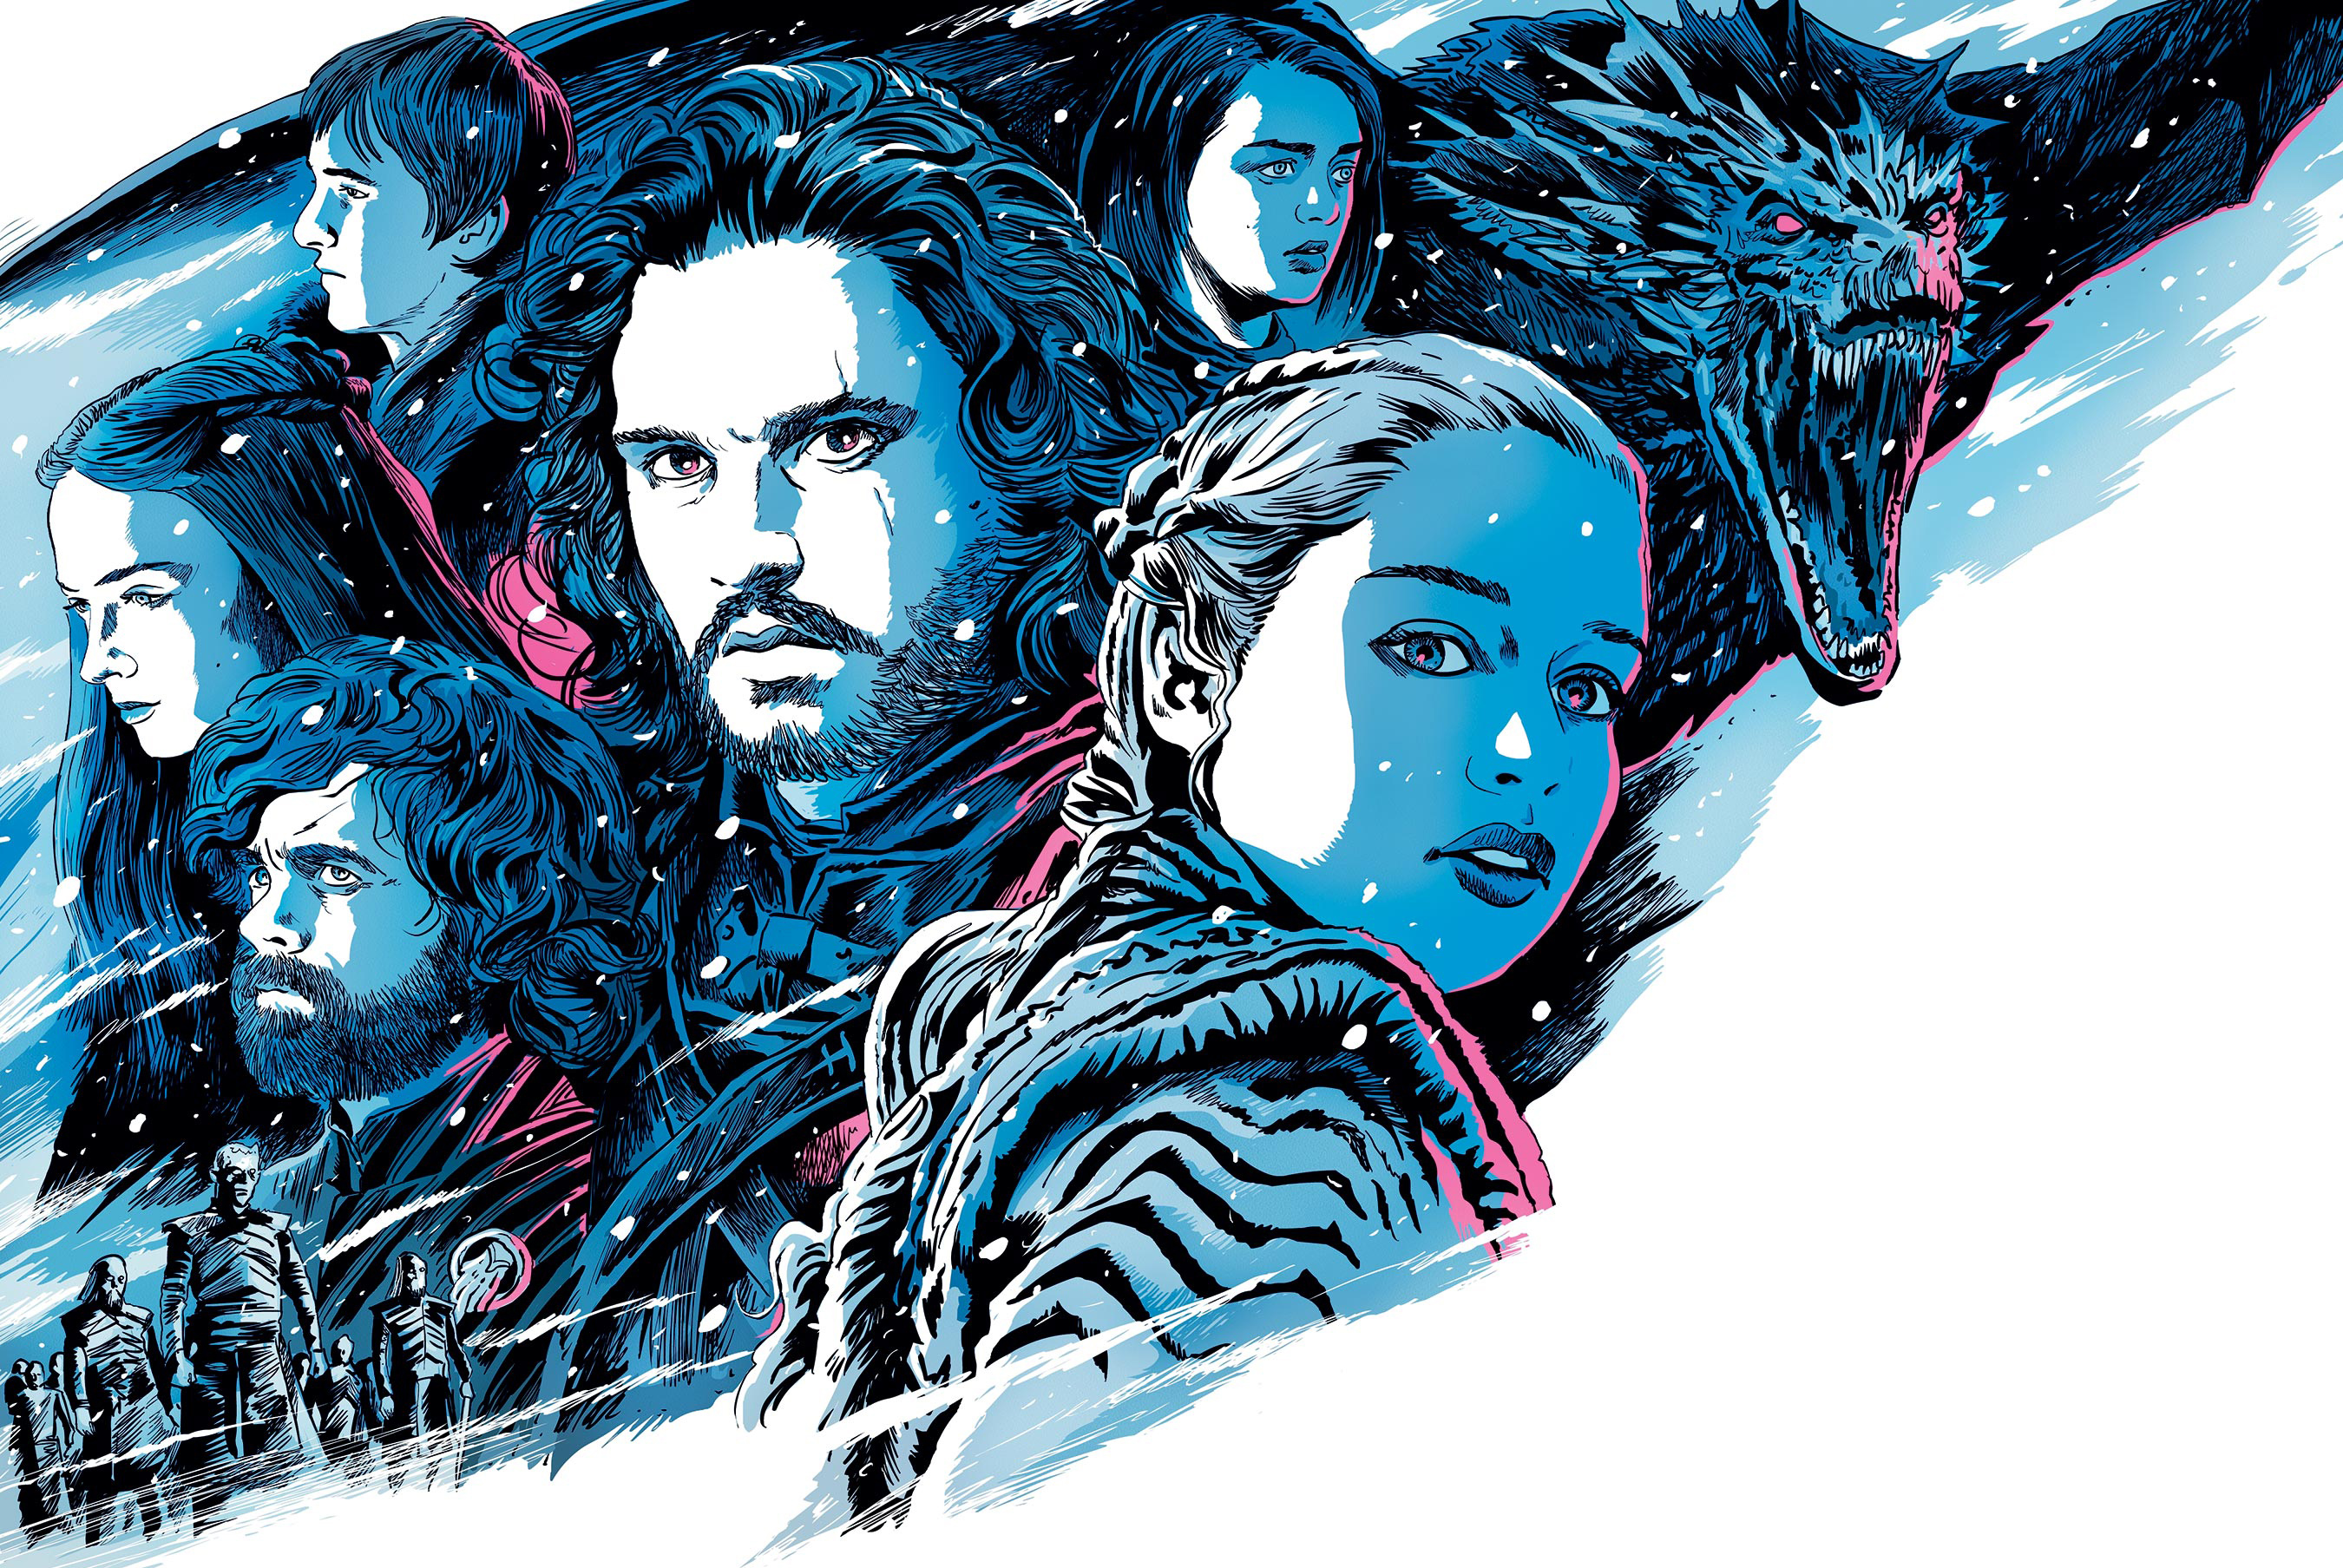 1400x900 Game Of Thrones Season 8 Illustration 1400x900 Resolution